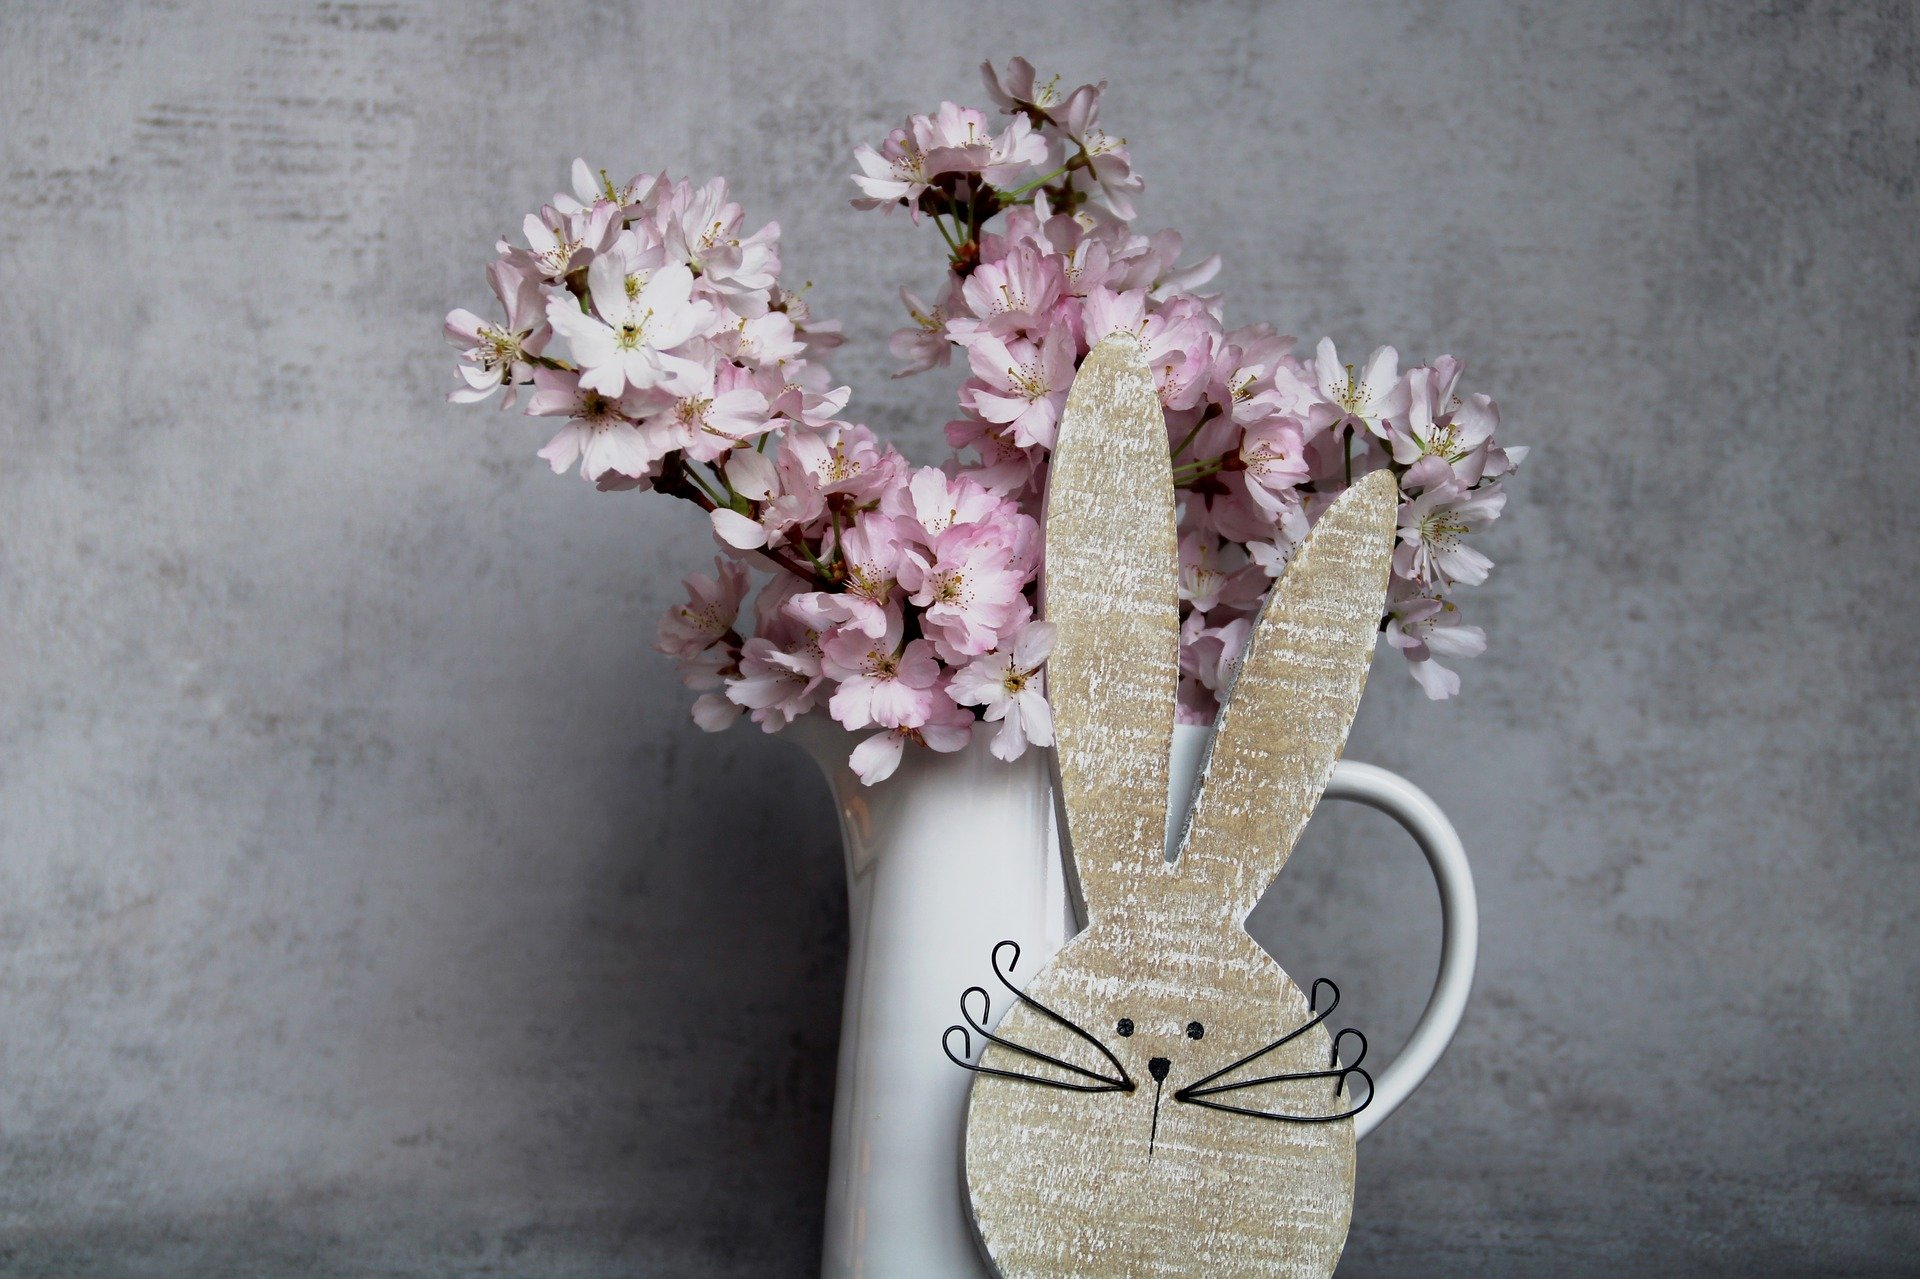 Hare next to vase with flowers